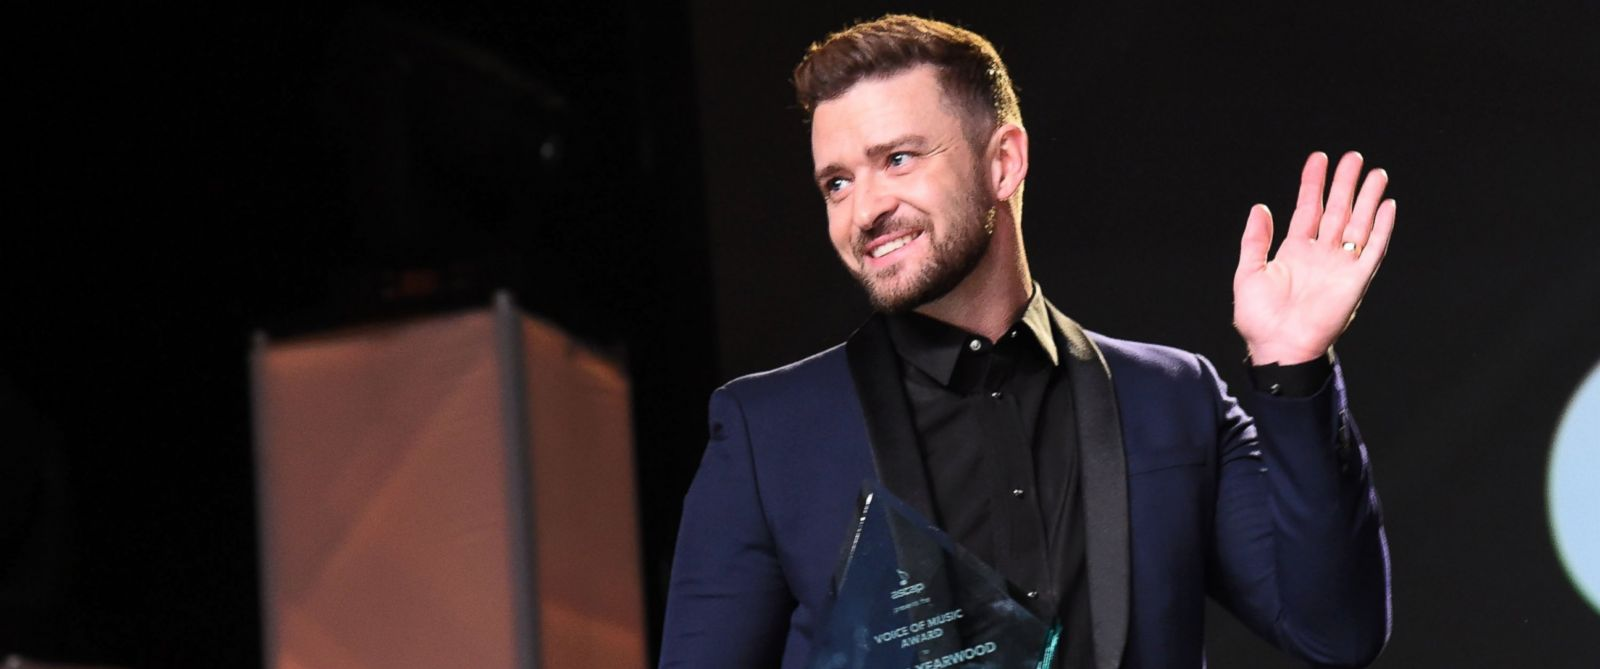 PHOTO: Singer-songwriter Justin Timberlake speaks onstage during the 53rd annual ASCAP Country Music awards at the Omni Hotel on Nov. 2, 2015 in Nashville, Tenn.